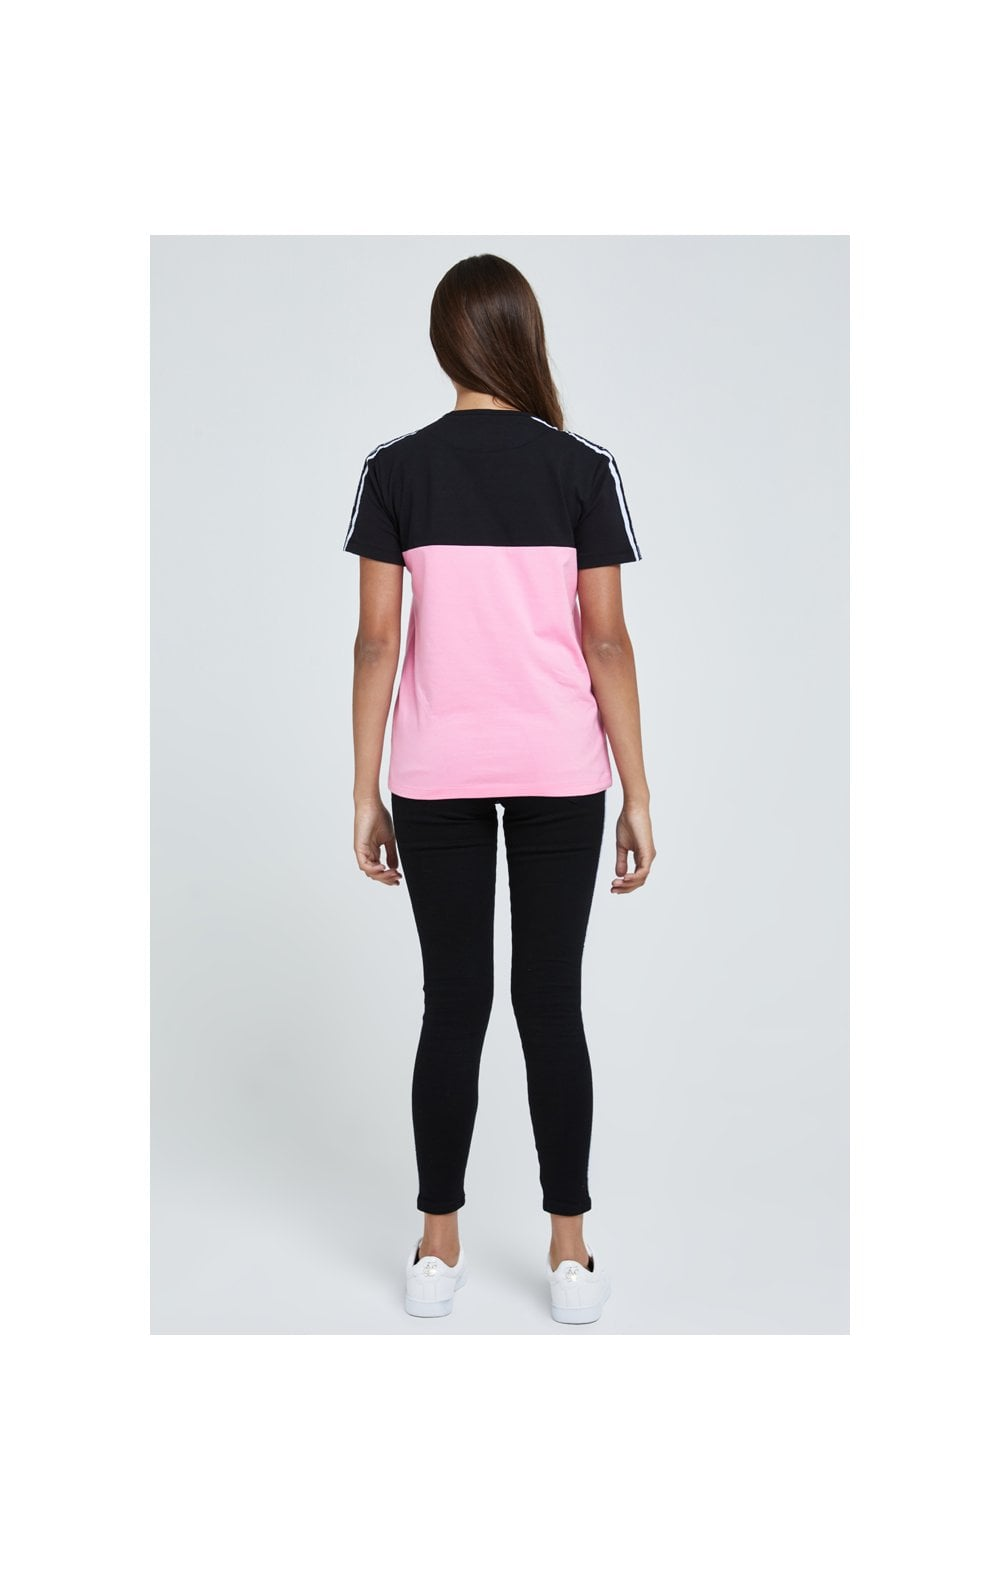 Load image into Gallery viewer, Illusive London Colour Block Tape Tee - Black & Pink (4)